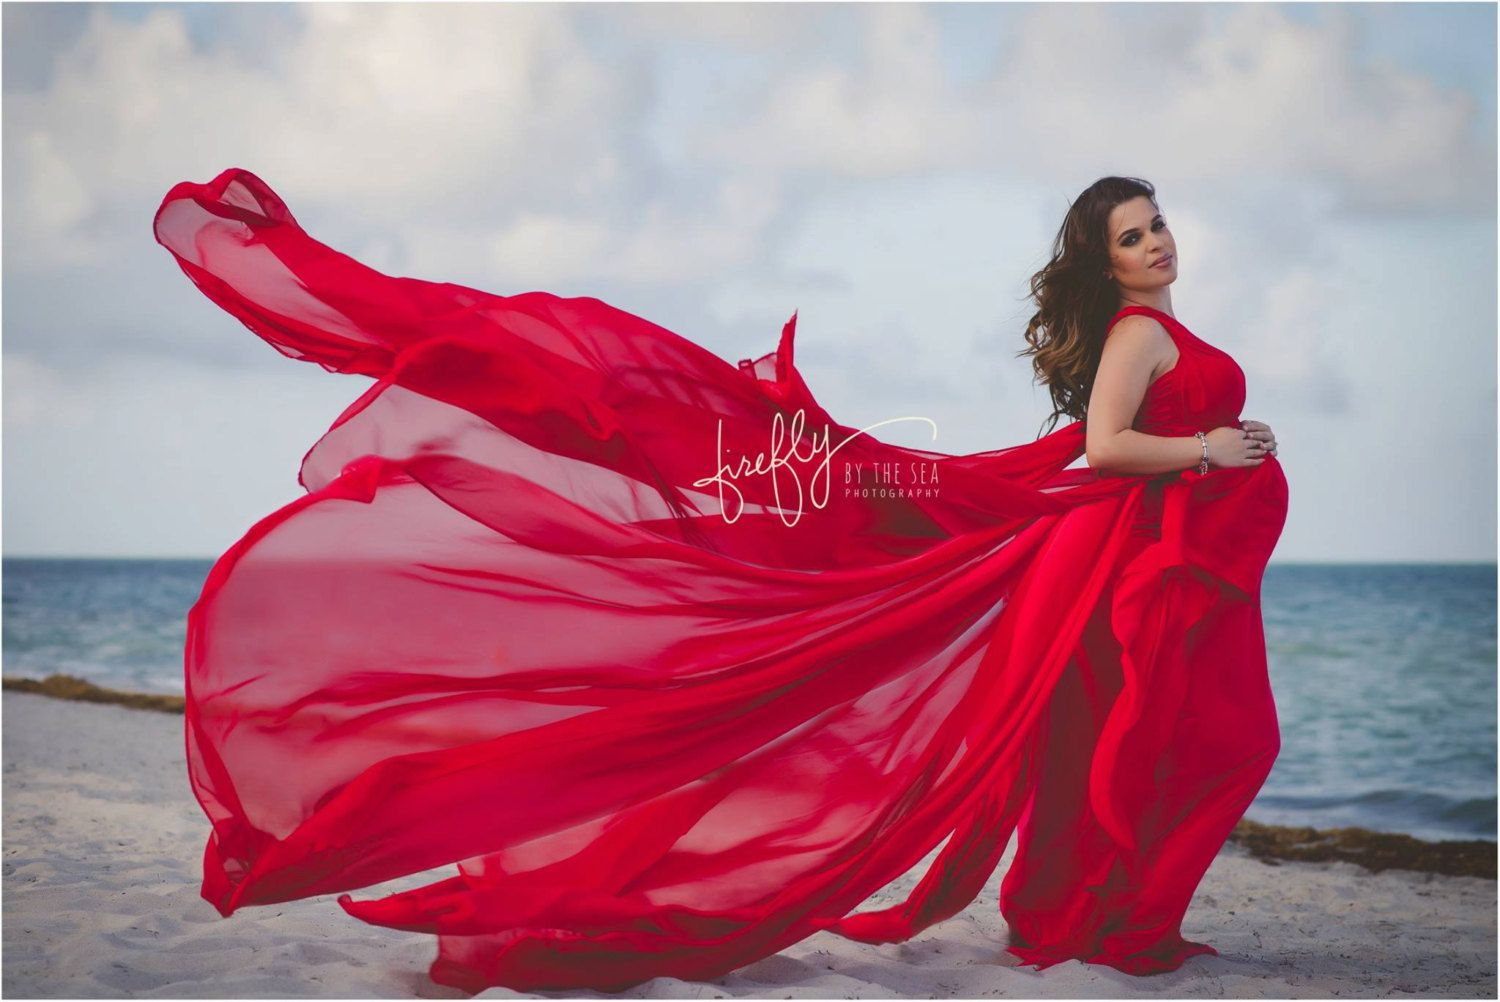 Infinity jersey maternity gown dress photo prop red by